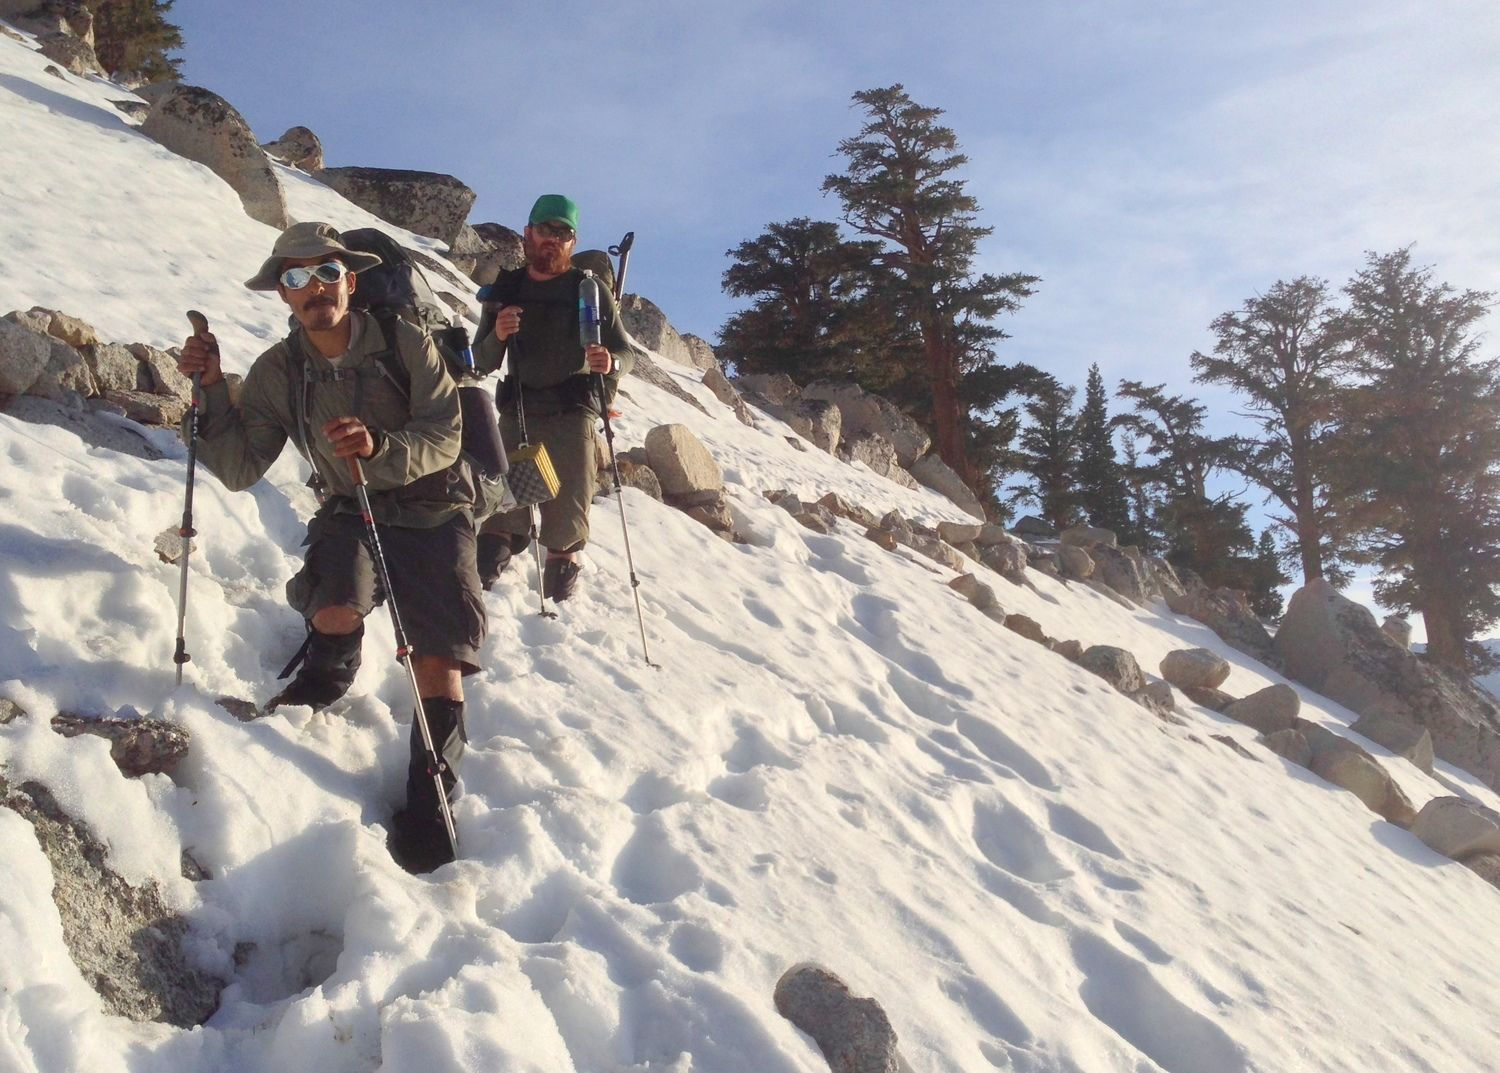 Two hikers using trekking poles in a snowscape.